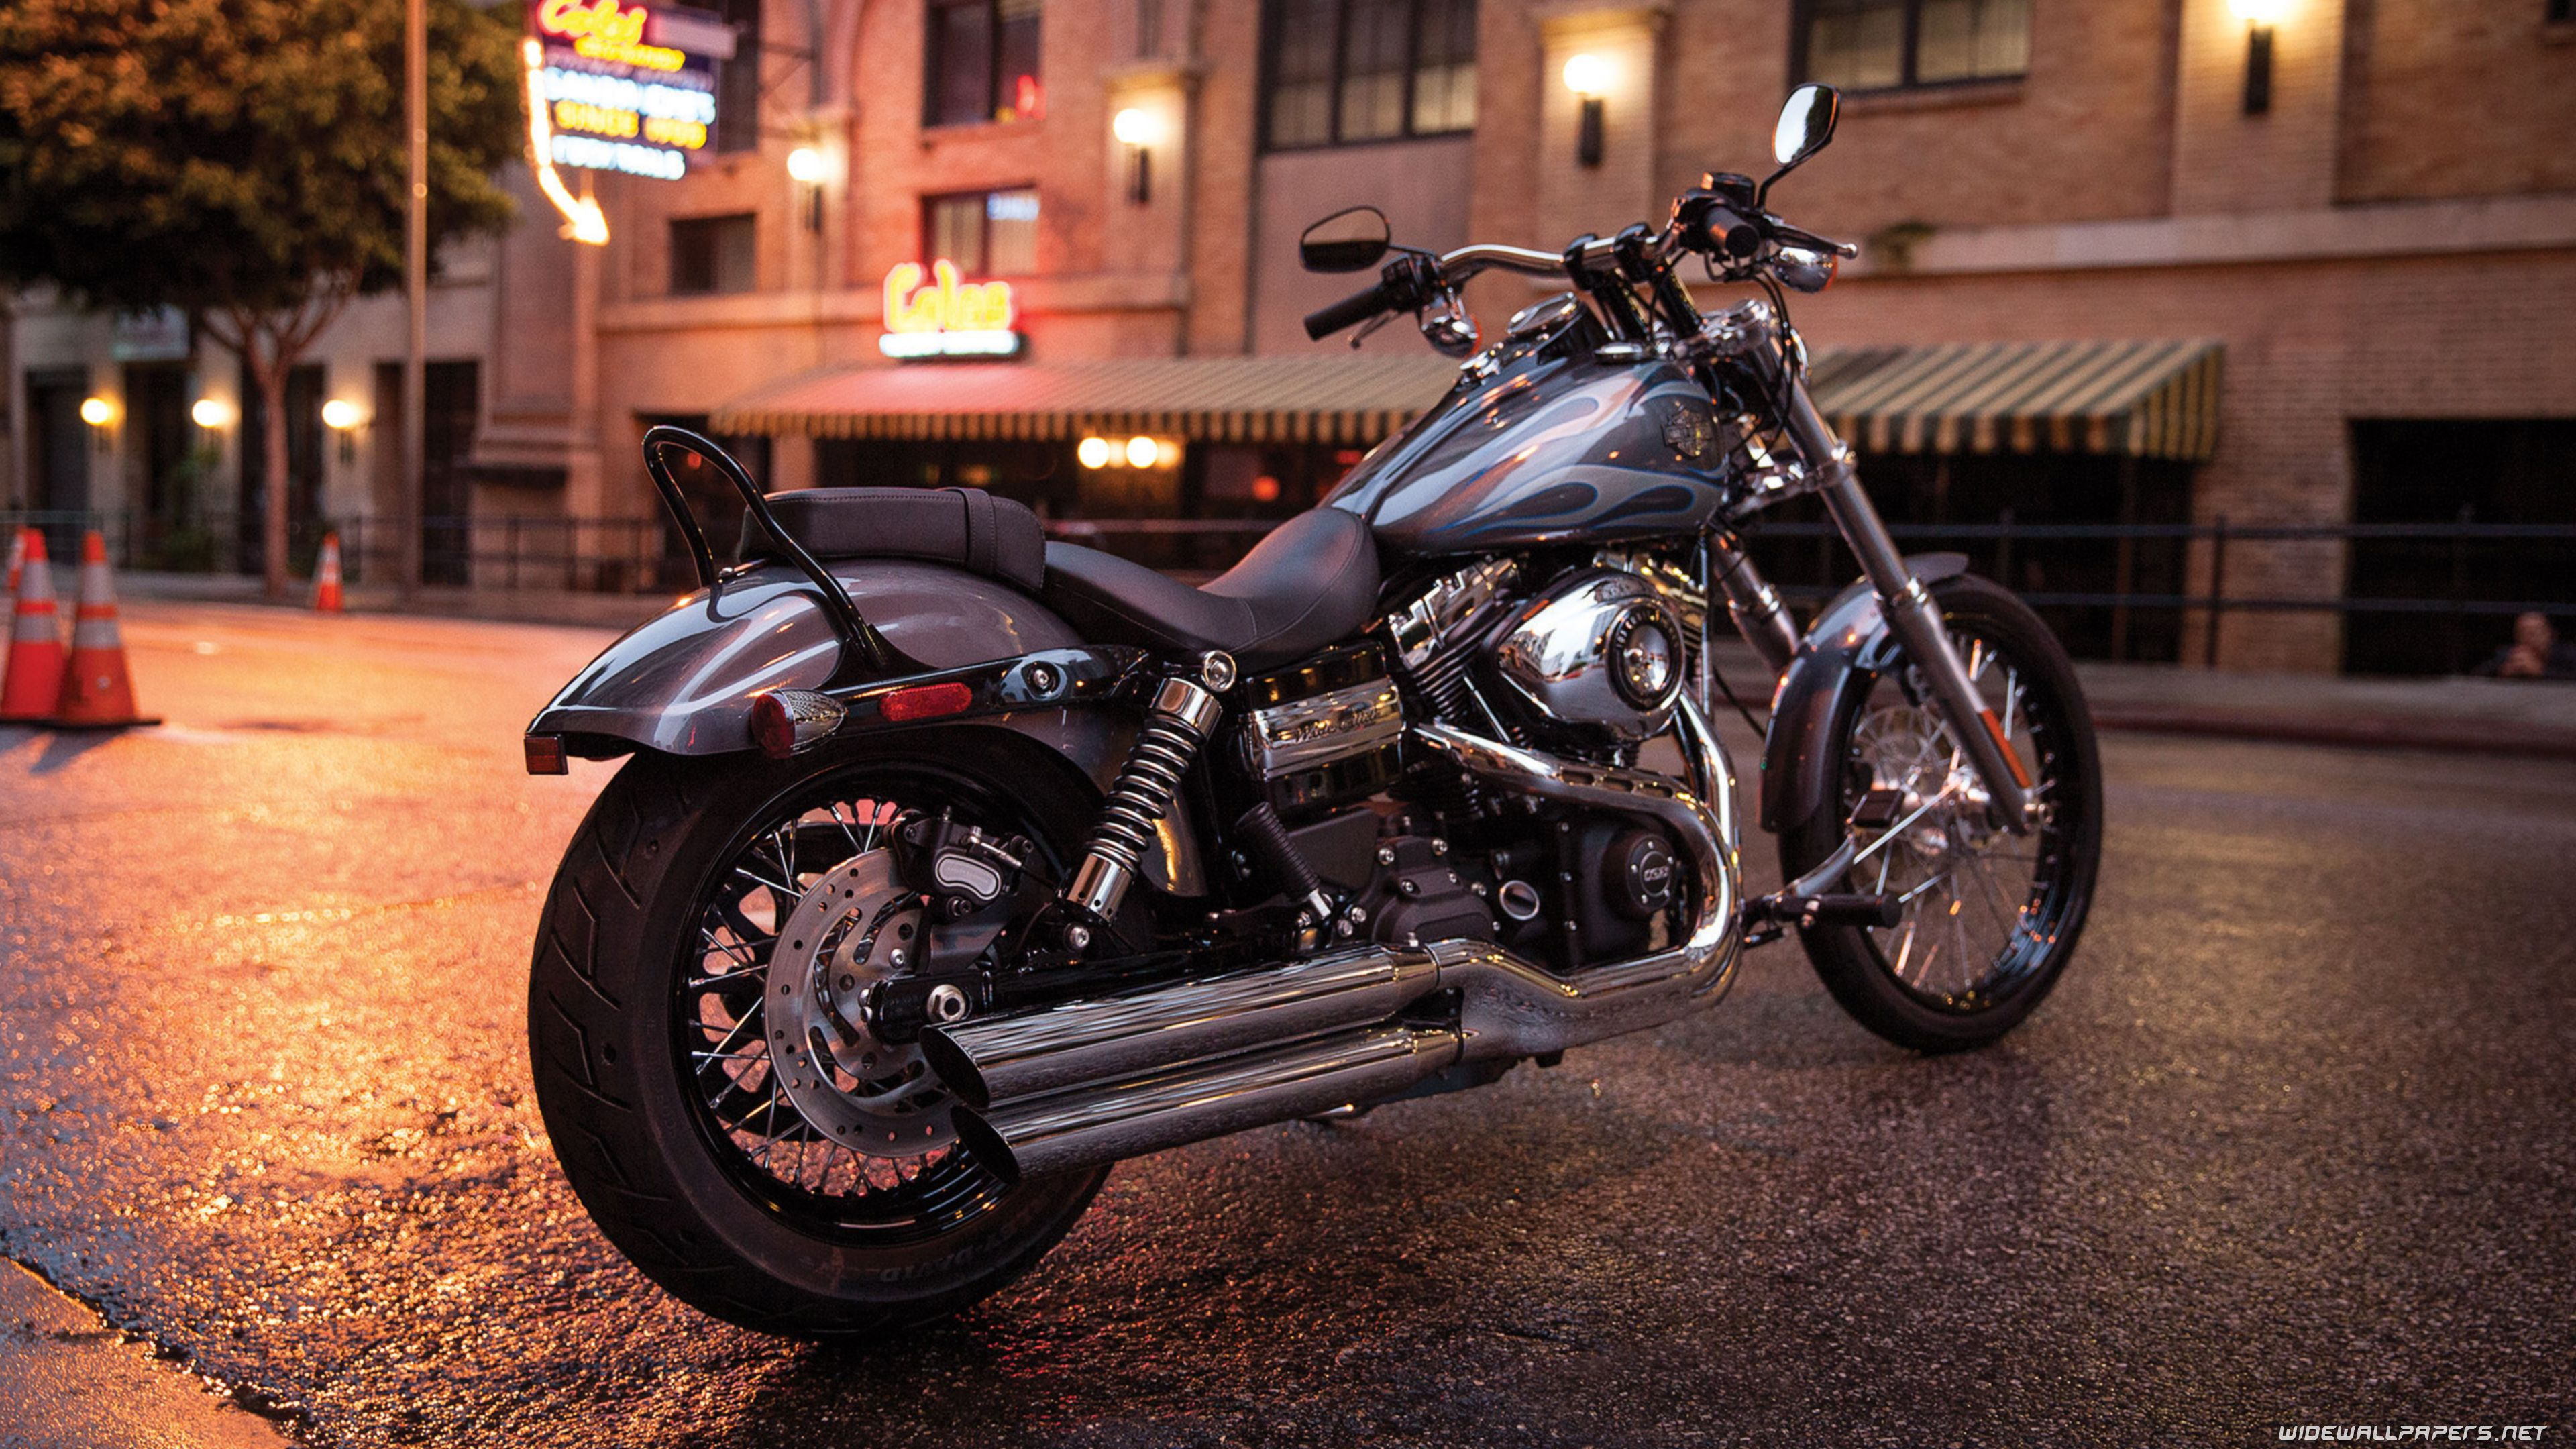 Harley-Davidson Dyna Wallpapers